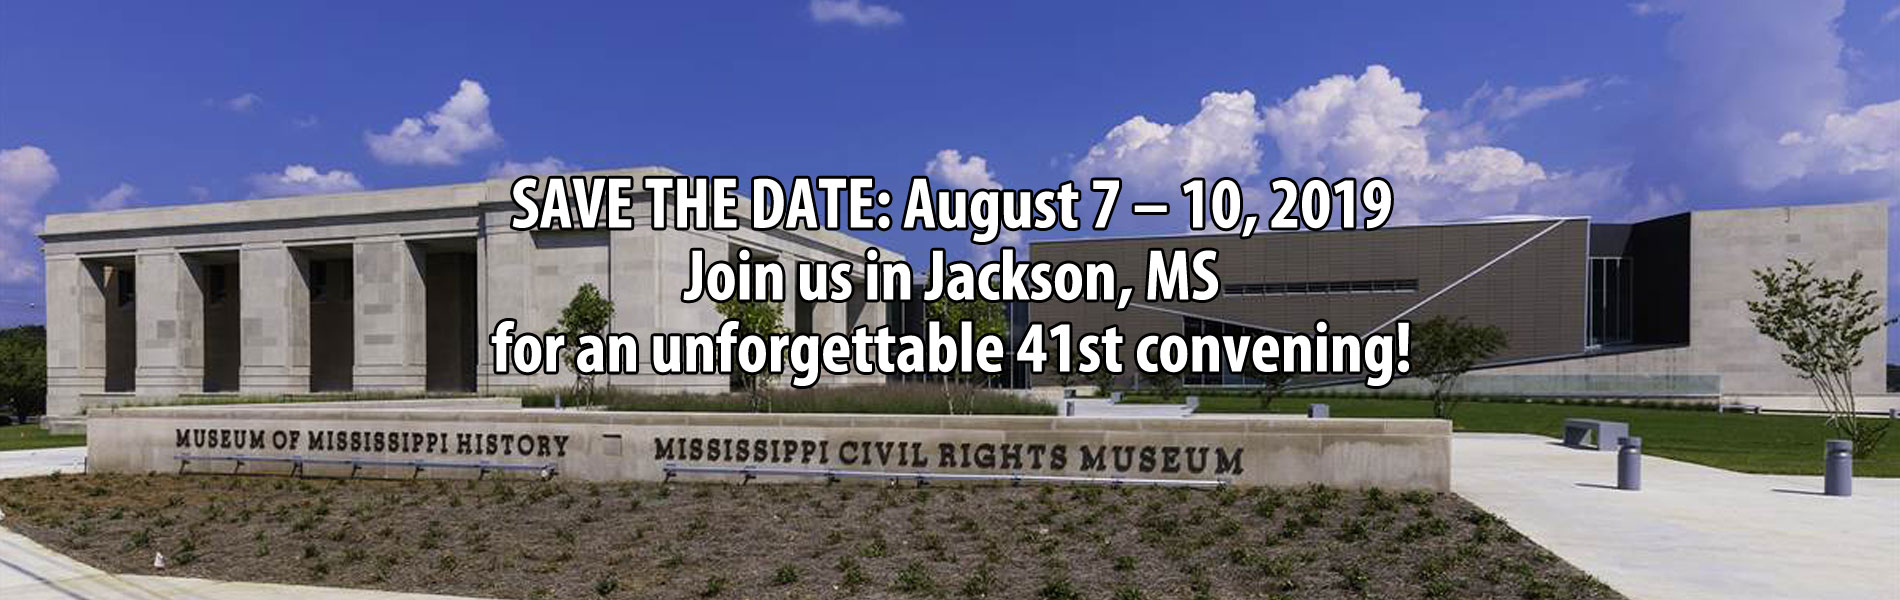 2019 Association of African American Museums in Jackson, Mississippi